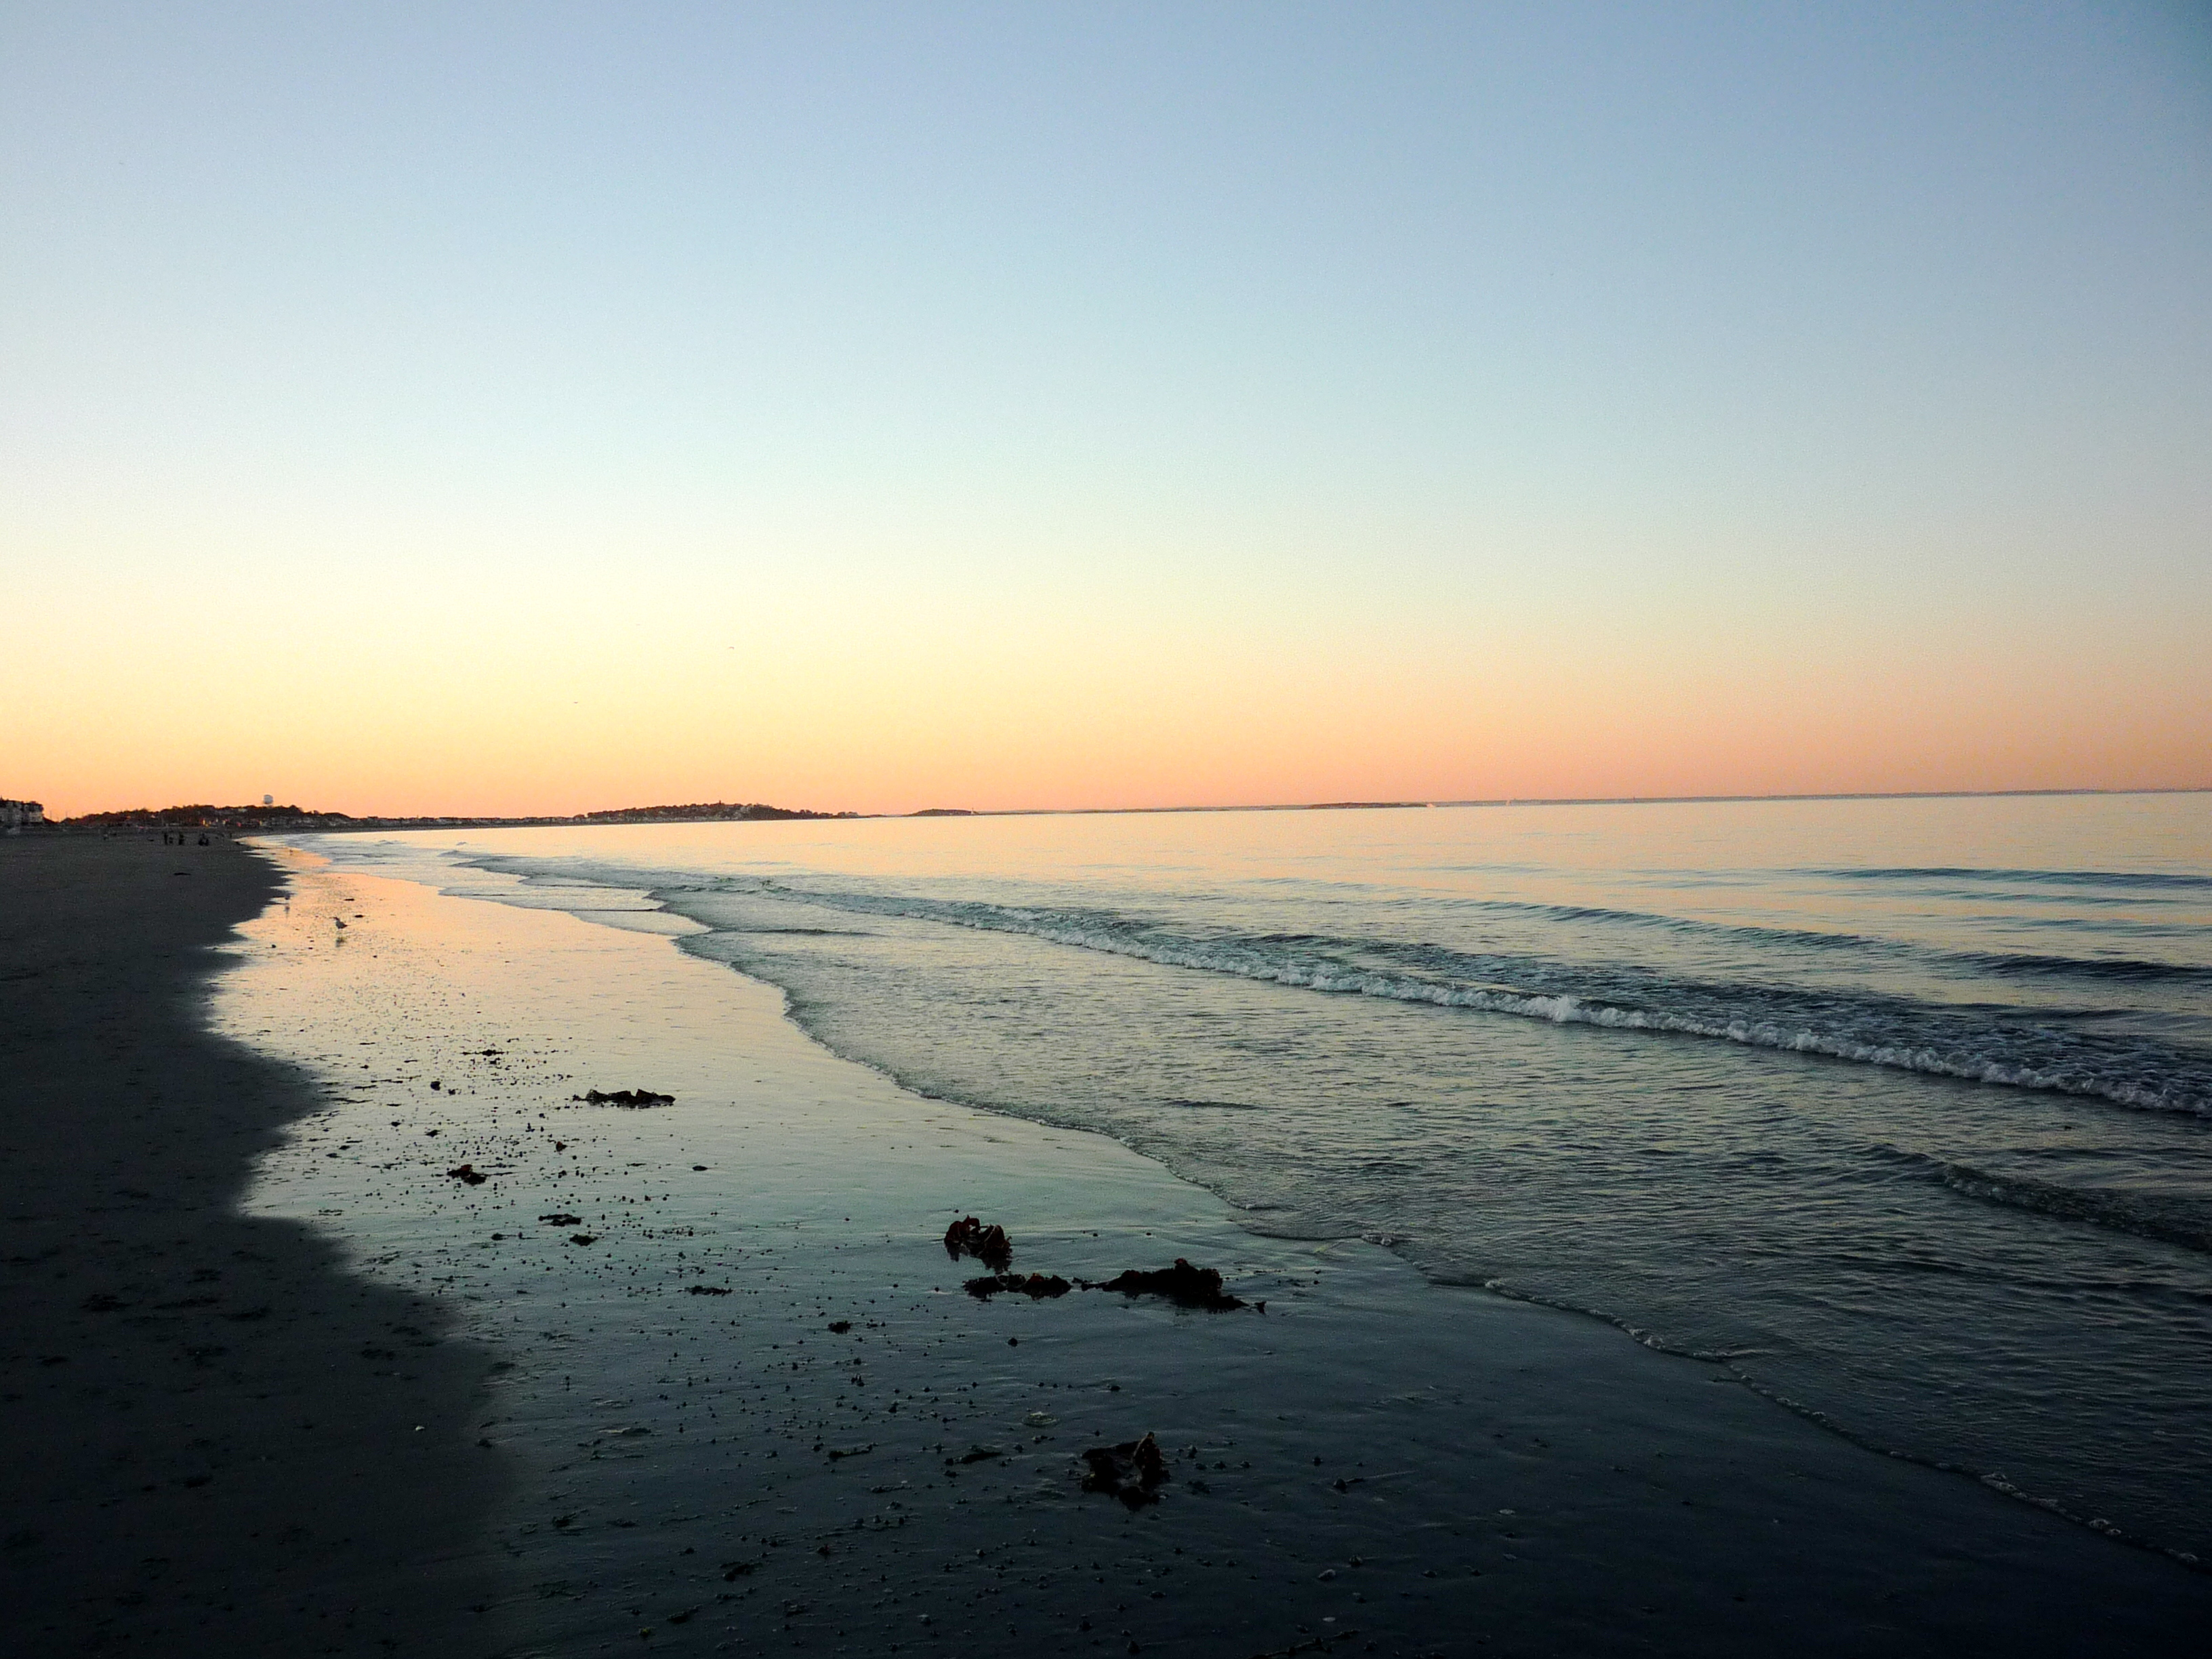 Image of Nantasket Beach, Hull, Mass